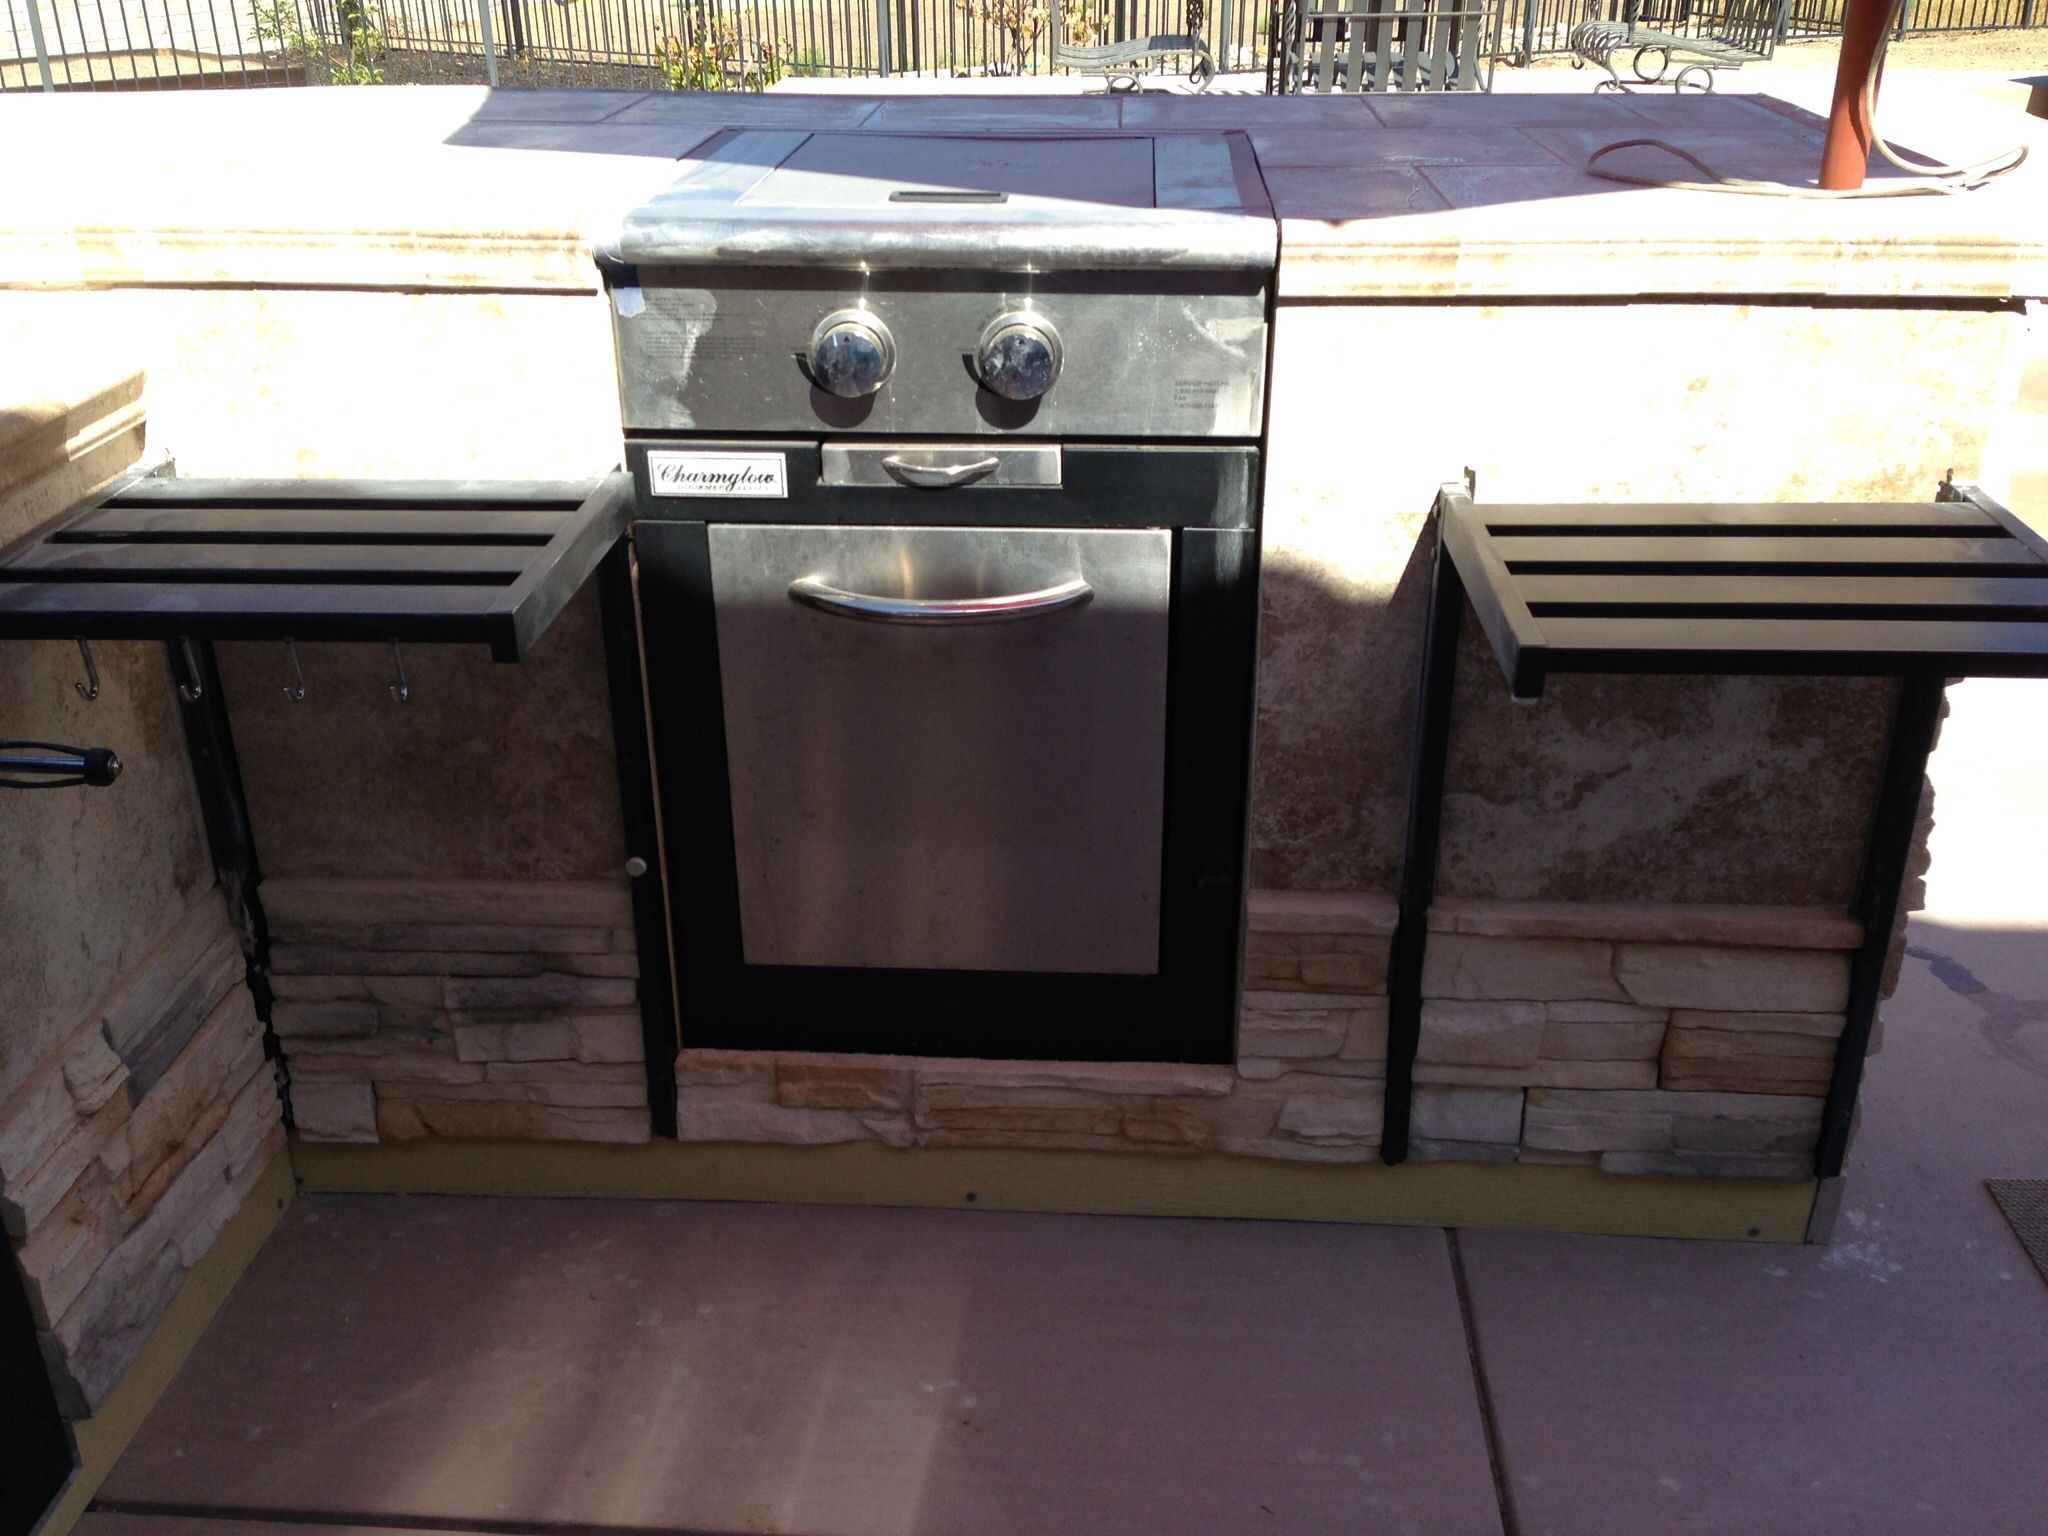 Set Into The Counter Top Is A Covered Propane Grill With A Refrigerator